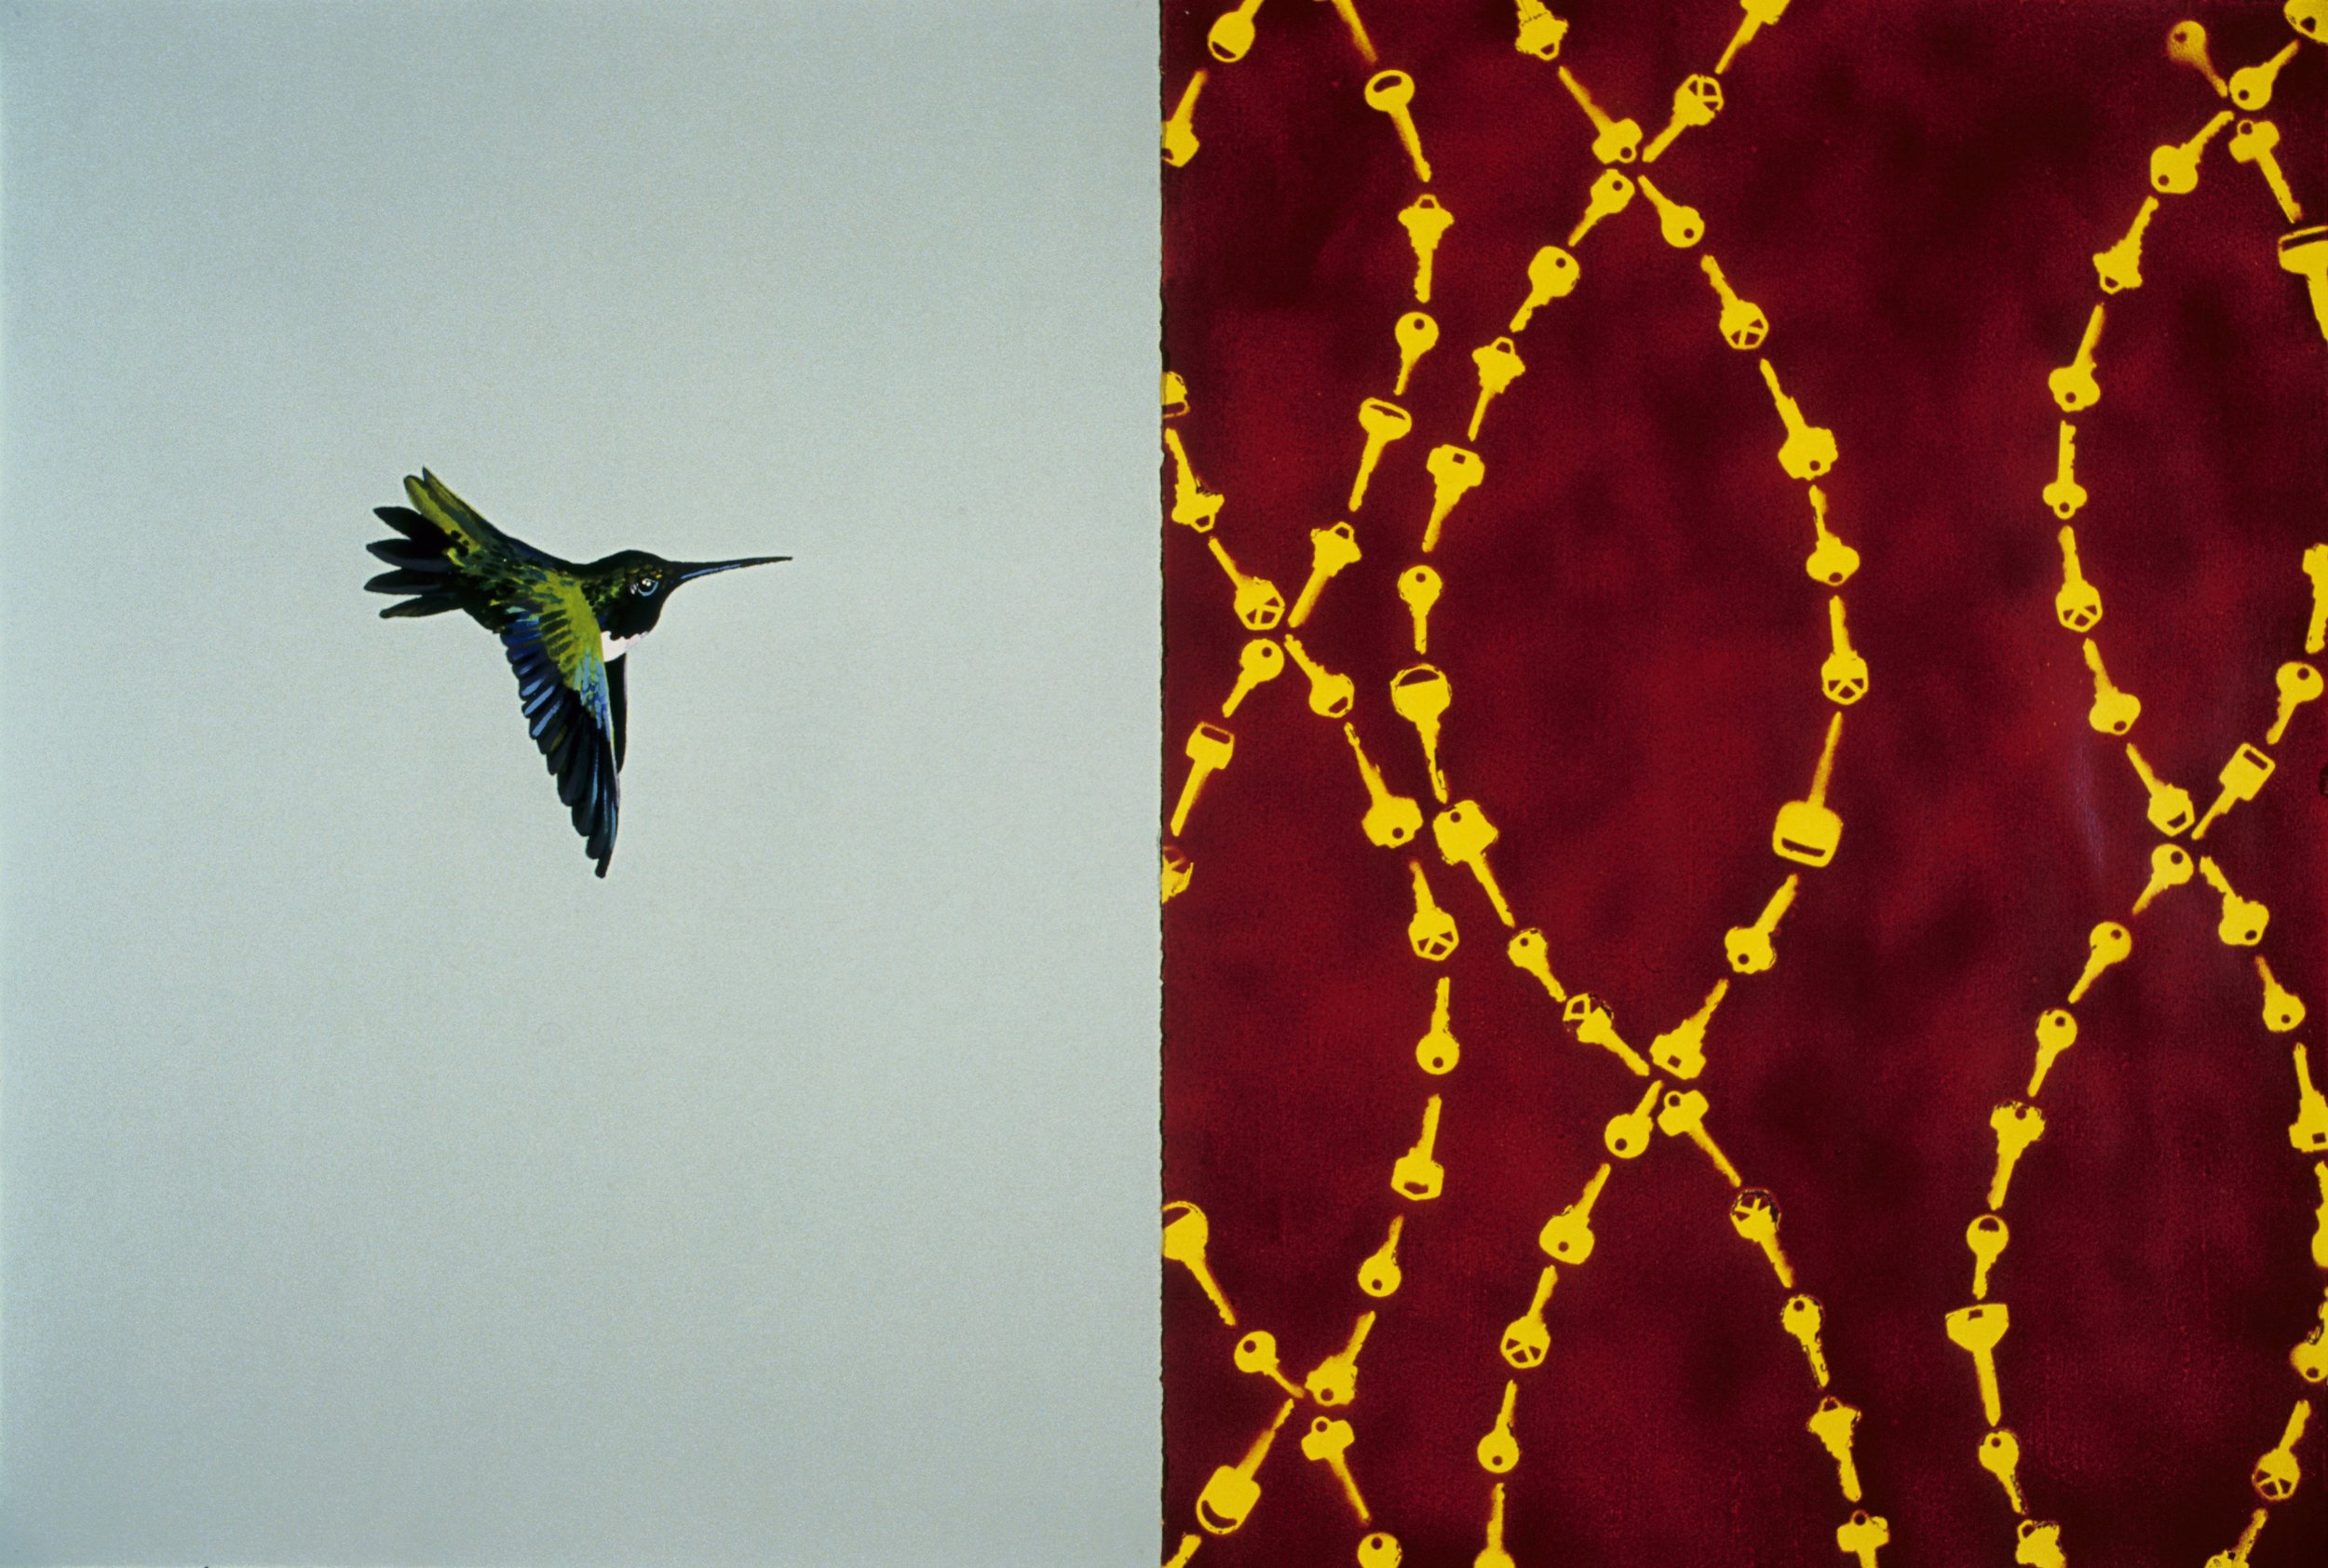 Untitled diptych, 2000